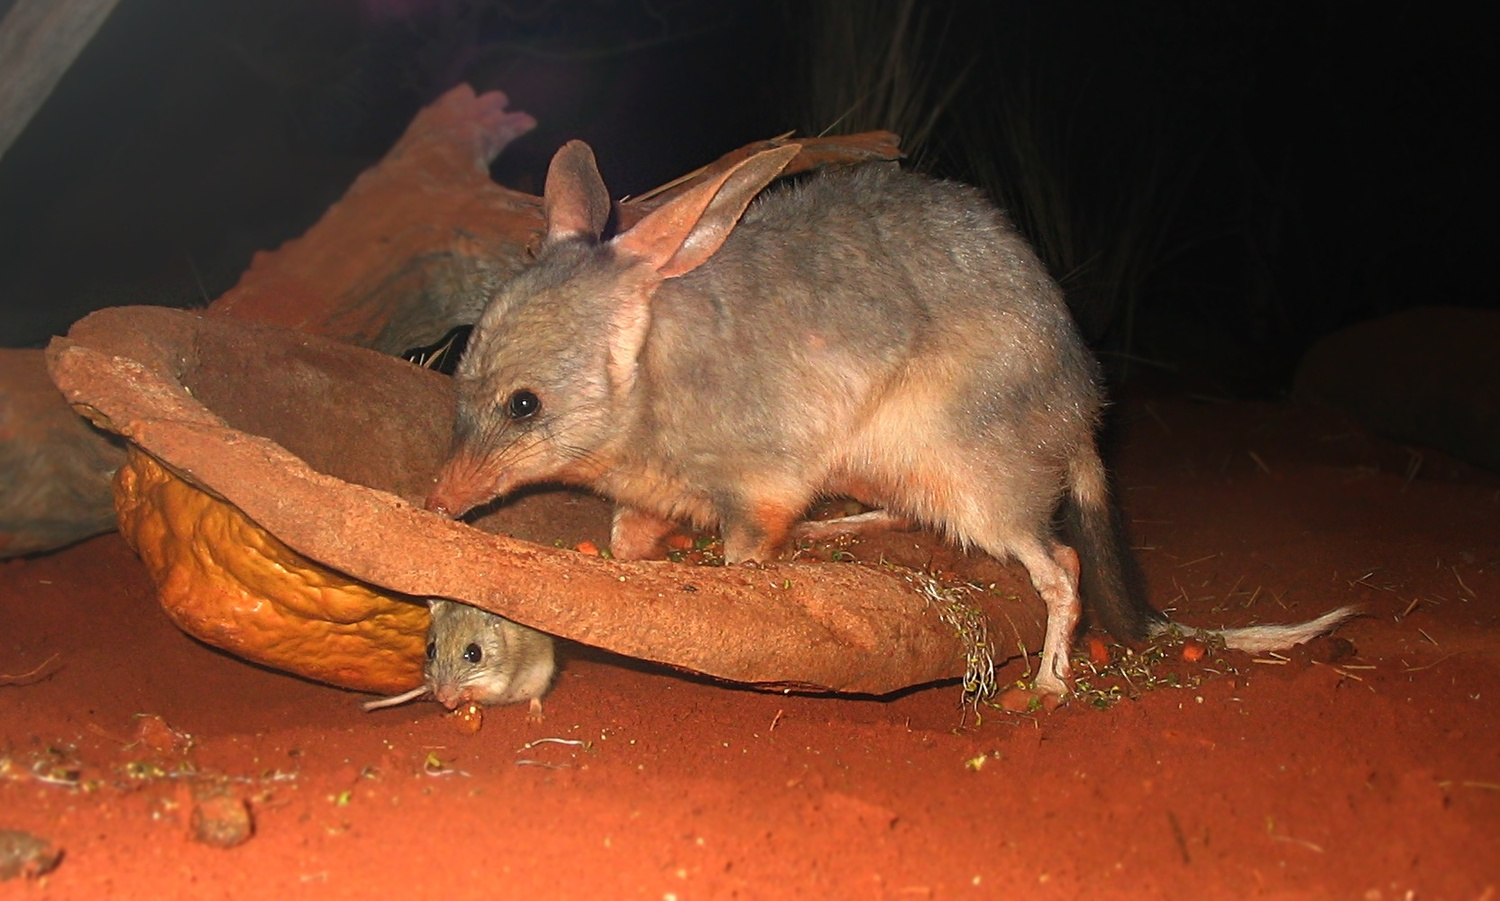 A Bilby (Macrotis lagotis) at Sydney Wildlife World